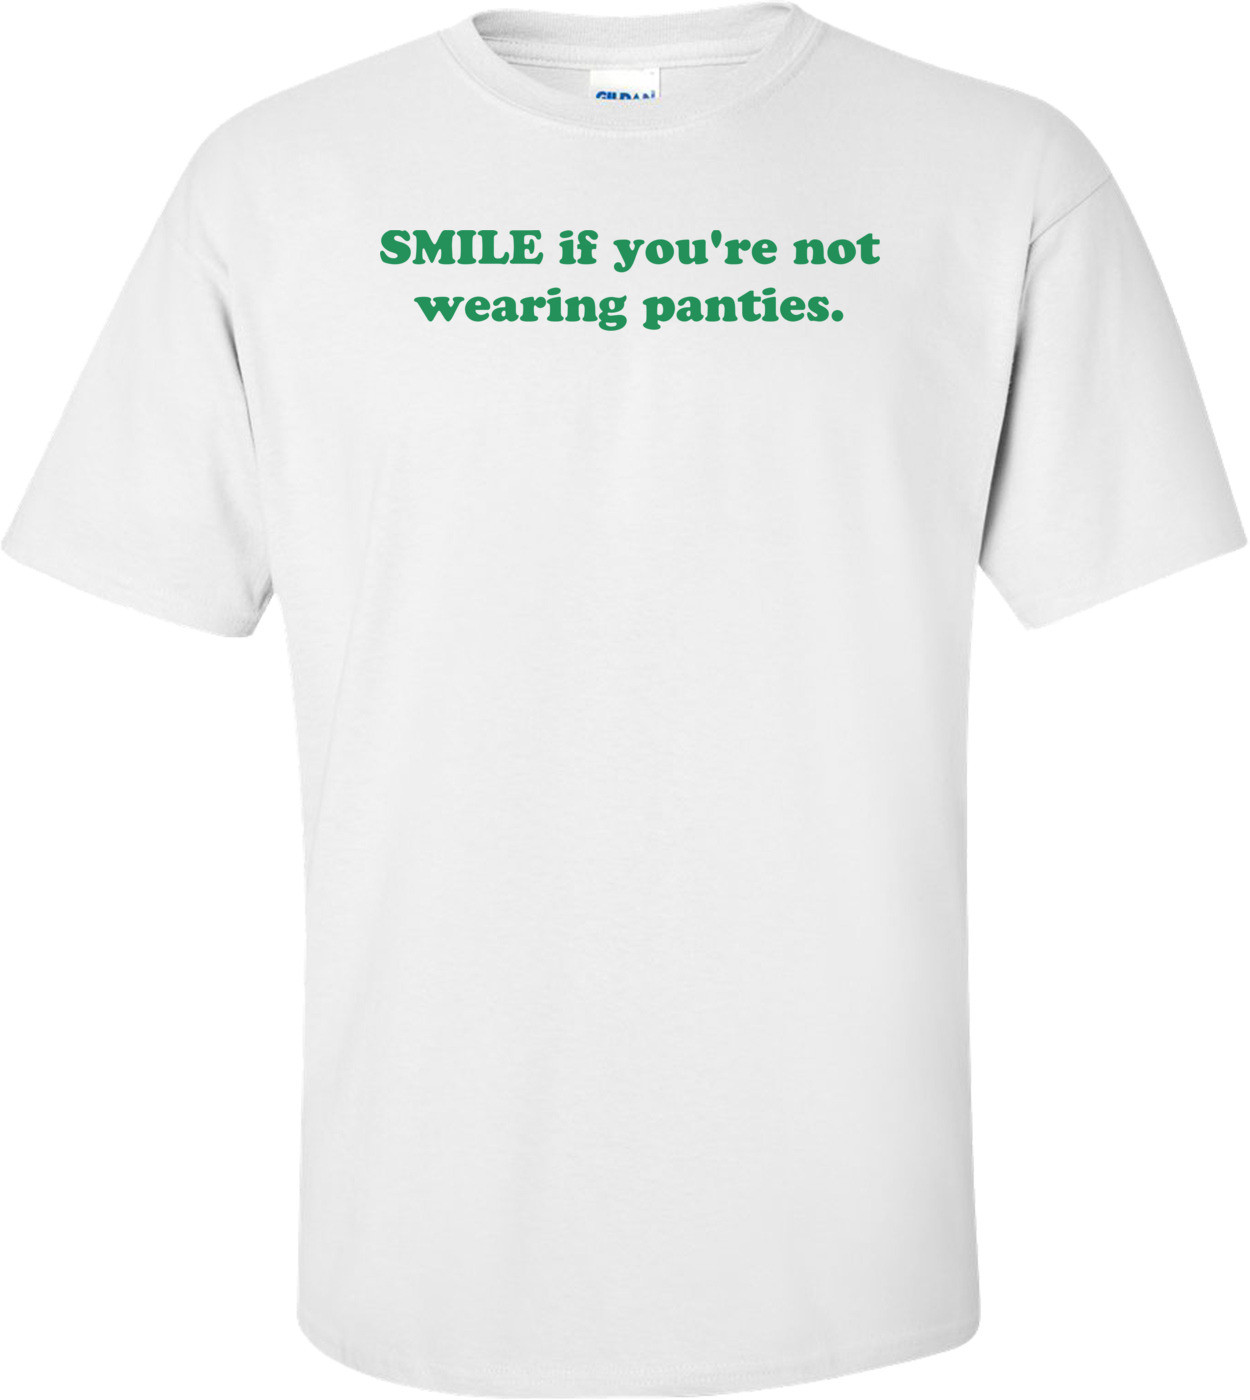 SMILE if you're not wearing panties. Shirt